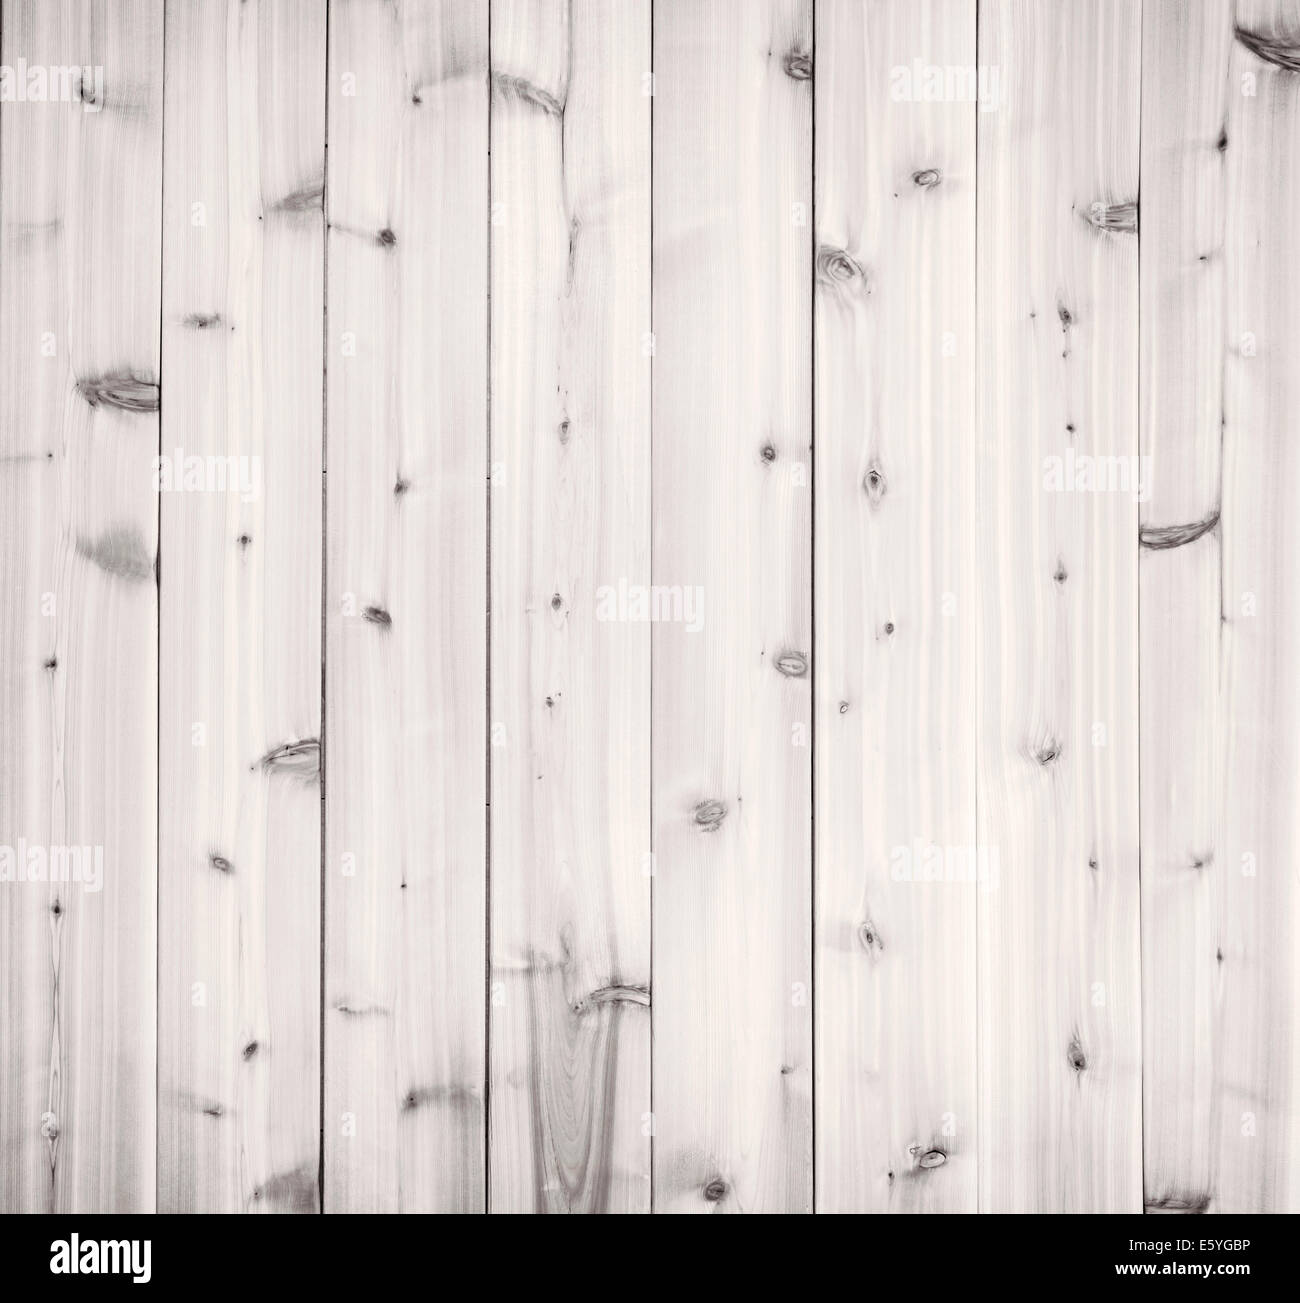 Pale Light Gray Wood Background Of Wooden Planks Showing